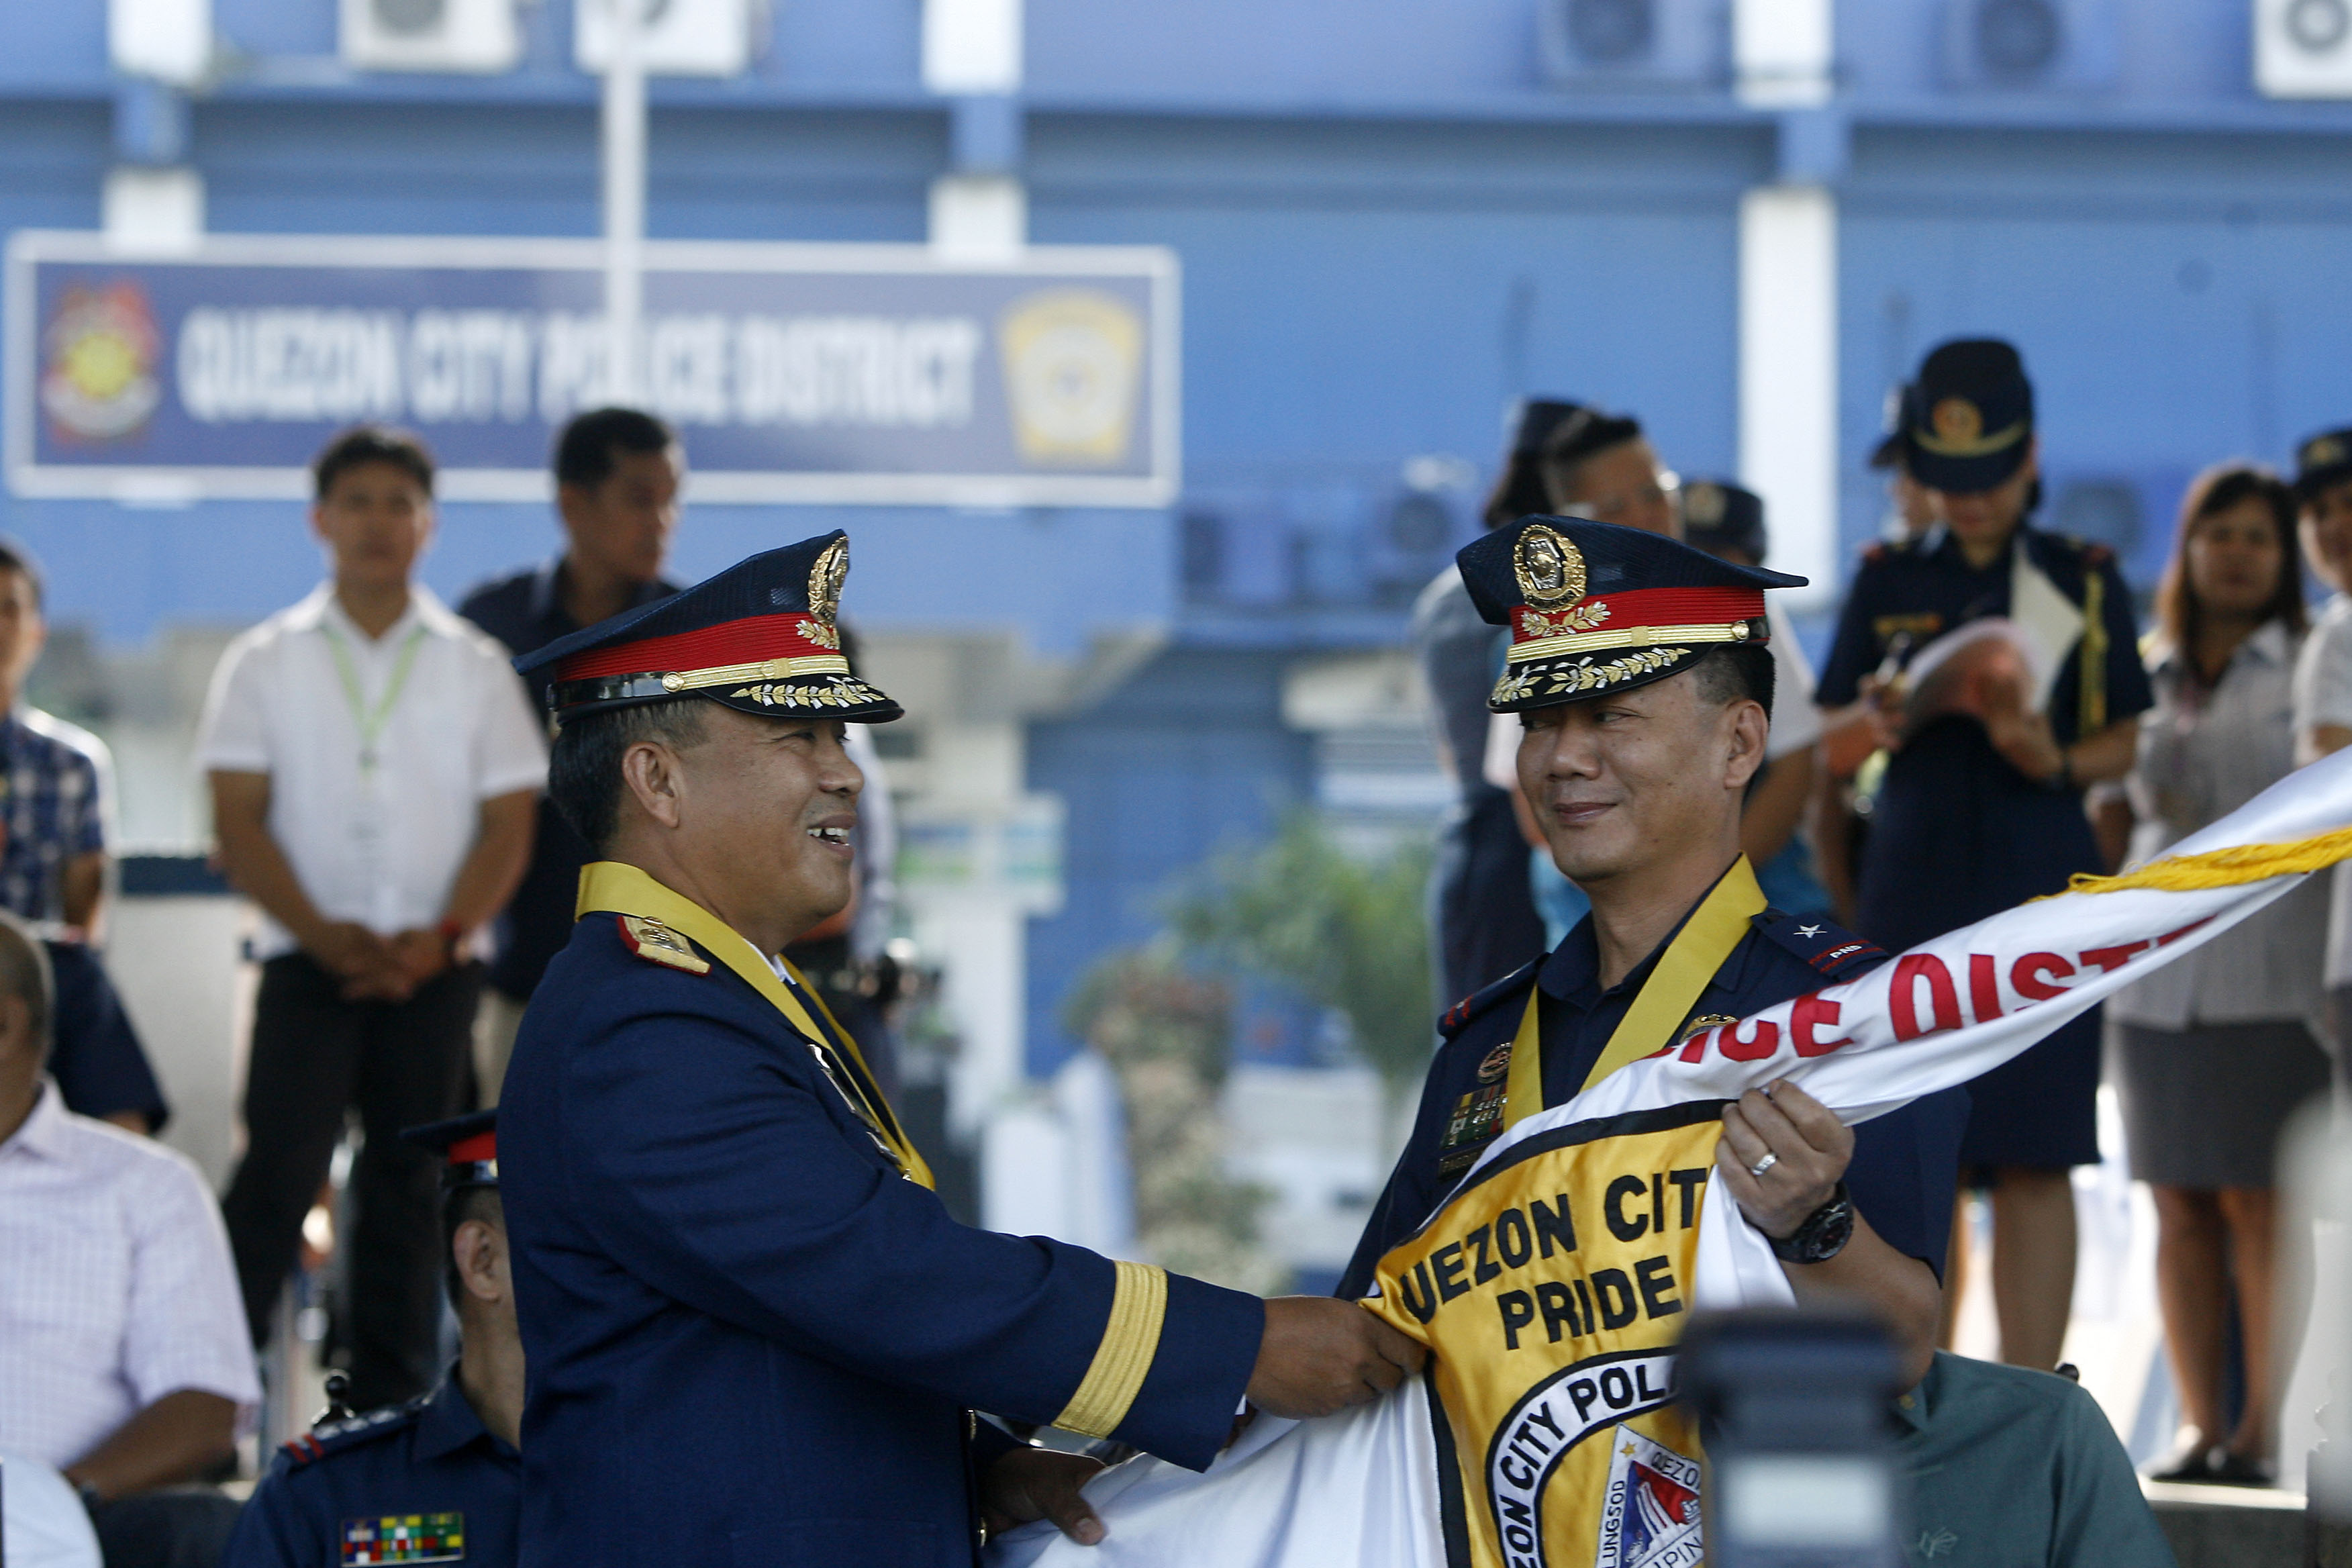 DENIALS. In this file photo, Quezon City Police District director PCSupt. Edgardo Tinio (left) accepts the command flag from NCRPO and outgoing QCPD director PCSupt. Joel Pagdilao on July 30, 2015. File photo by Ben Nabong/Rappler